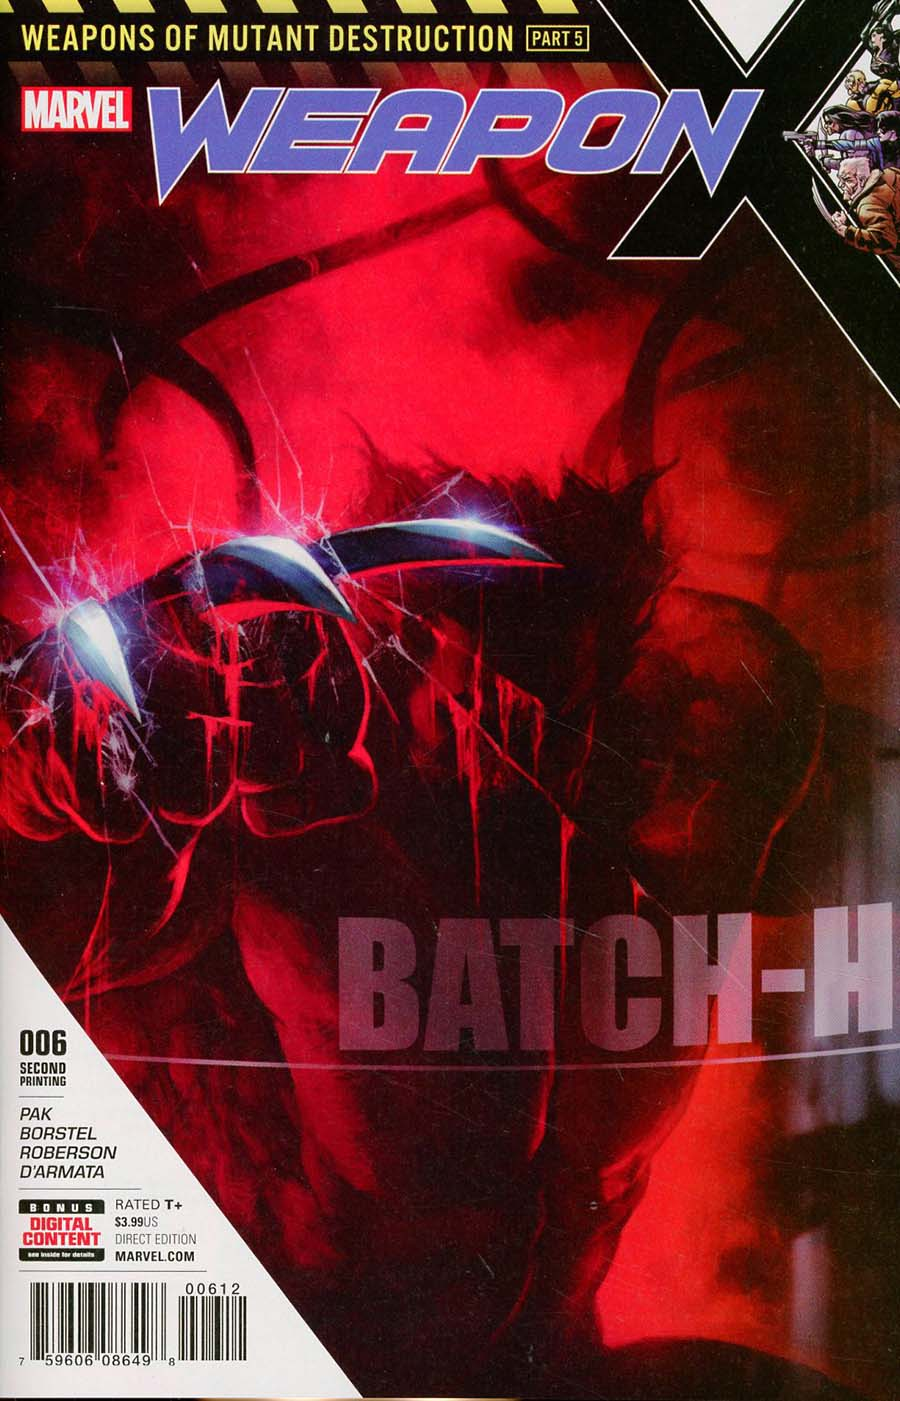 Weapon X Vol 3 #6 Cover B 2nd Ptg Skan Variant Cover (Weapons Of Mutant Destruction Part 5)